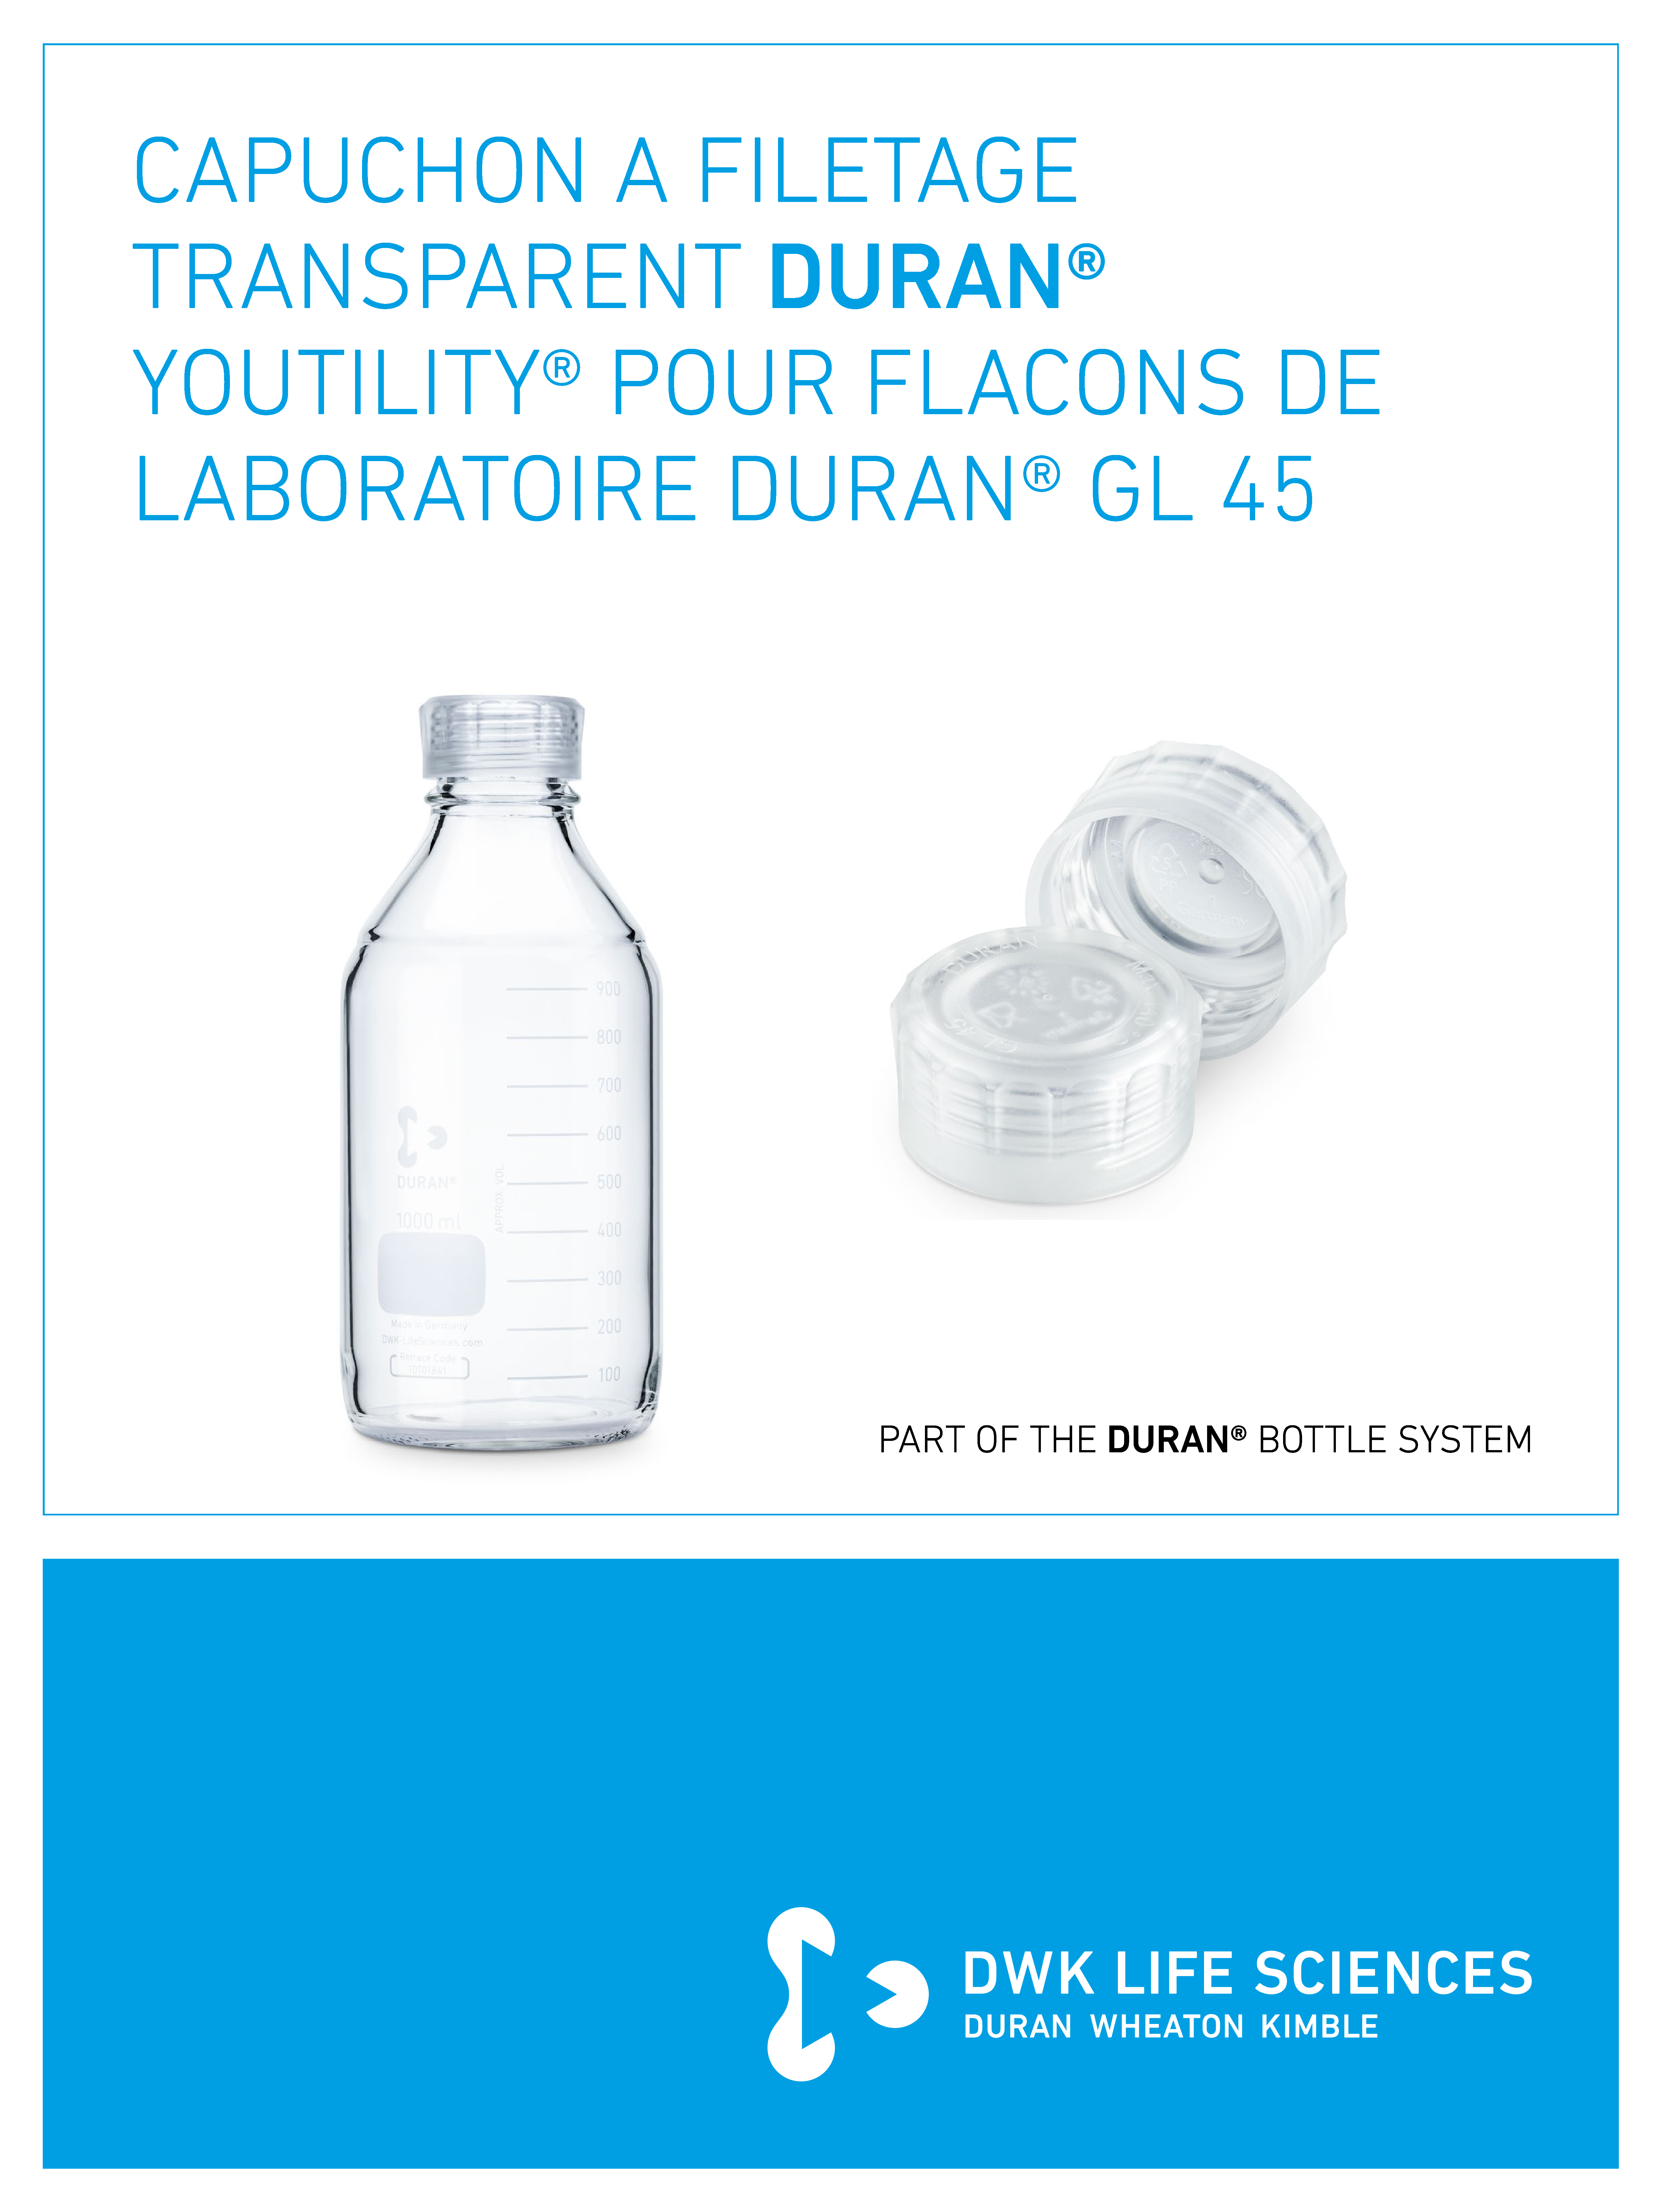 DURAN® YOUTILITY® Screw Cap Transparent